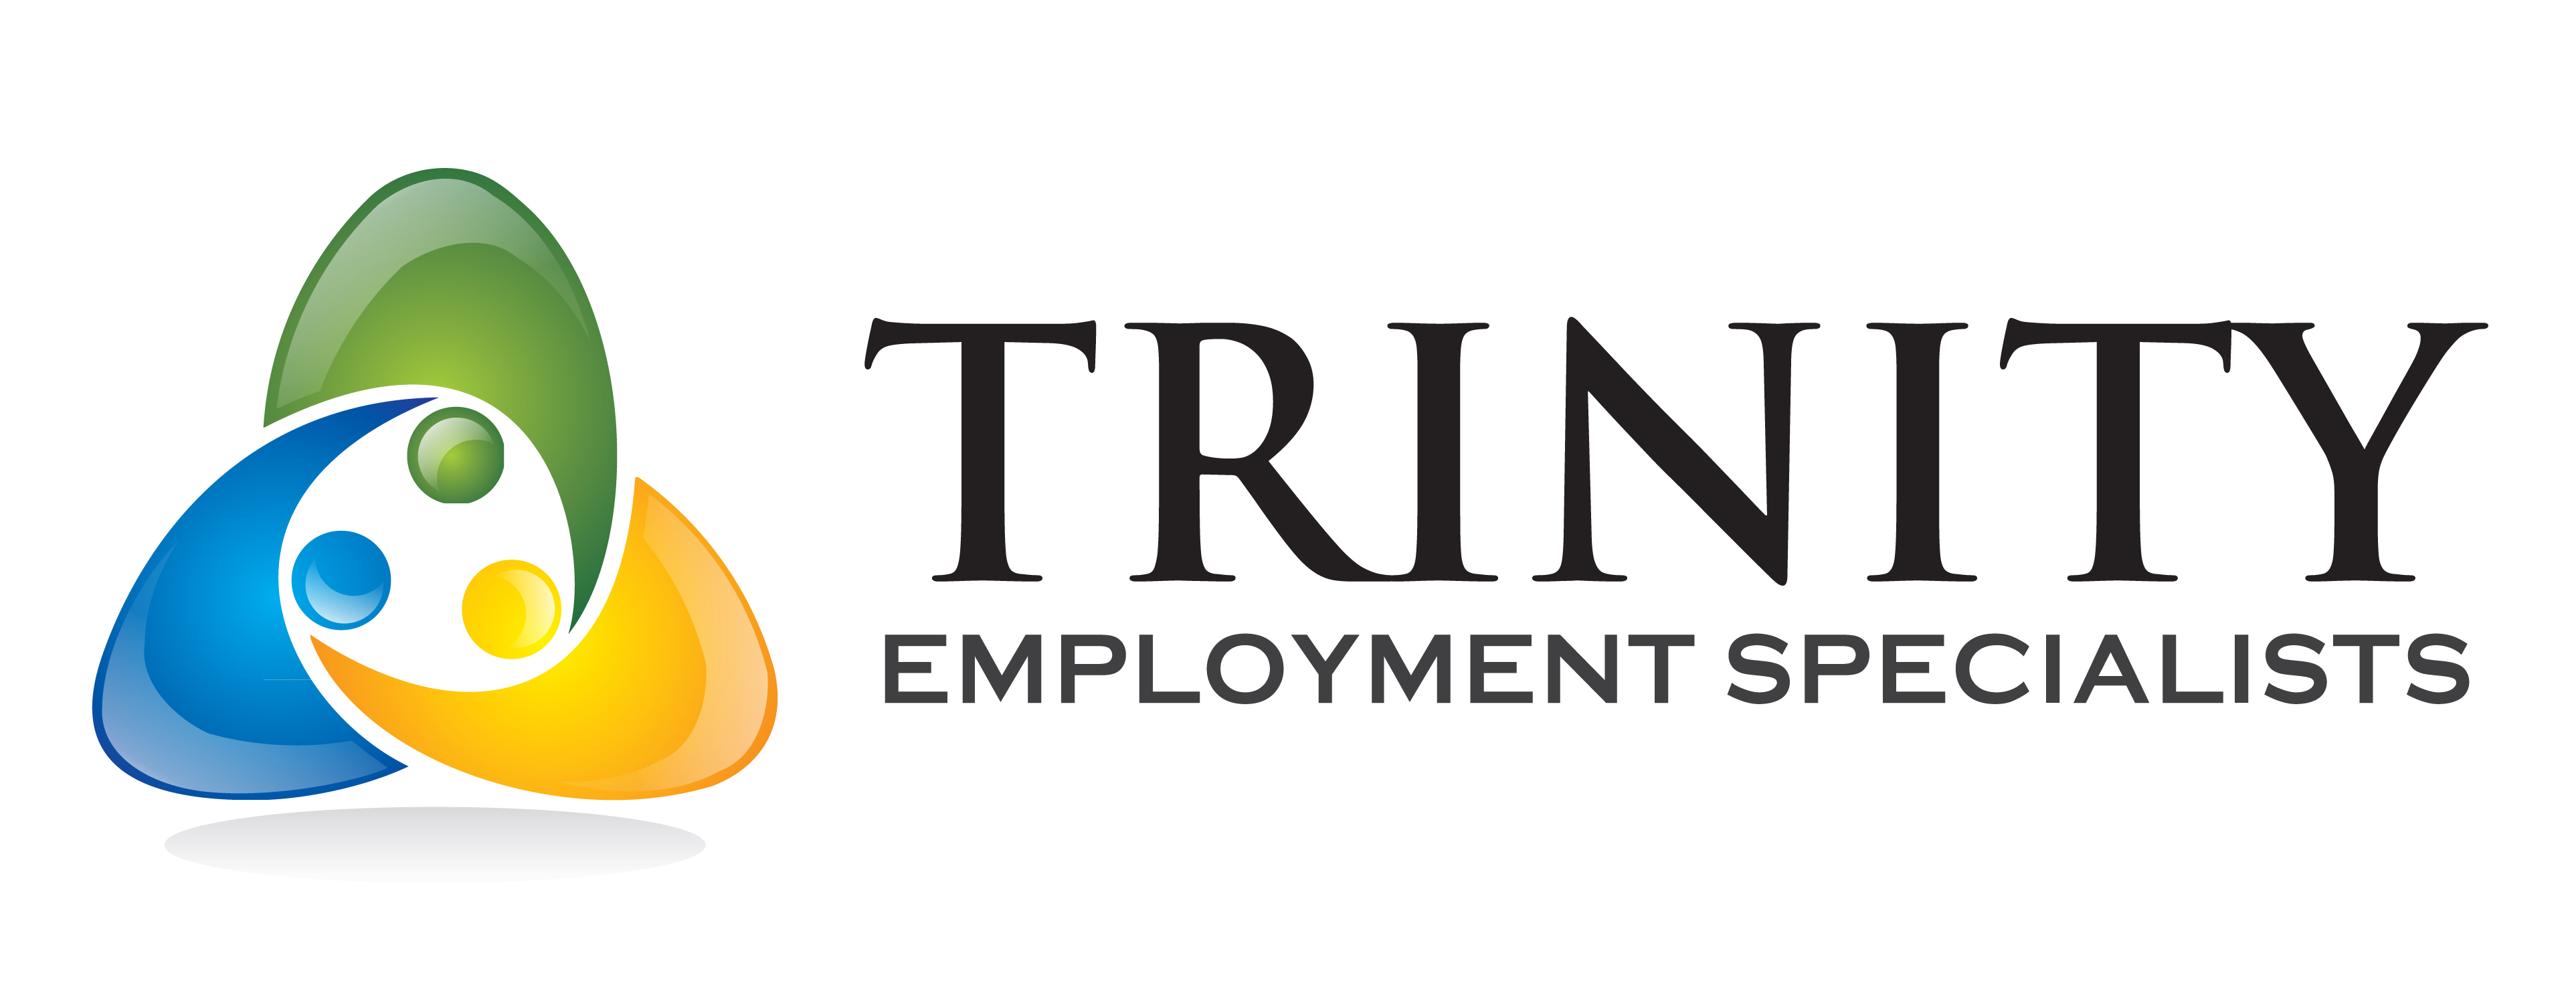 Find Banking Jobs in Tulsa | Life After Trinity | Employment OK